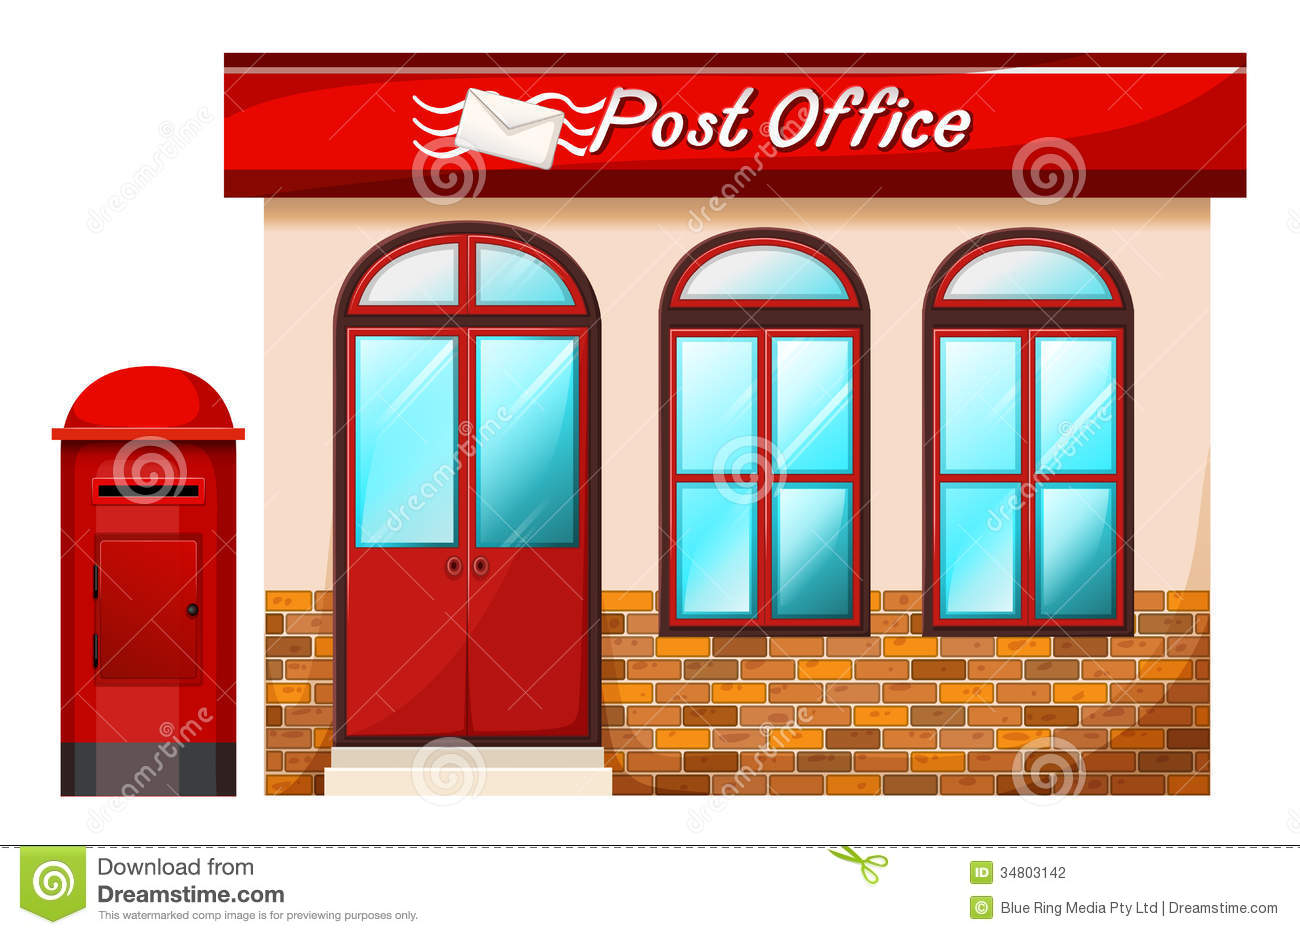 Illustration of a Post office on a white background.